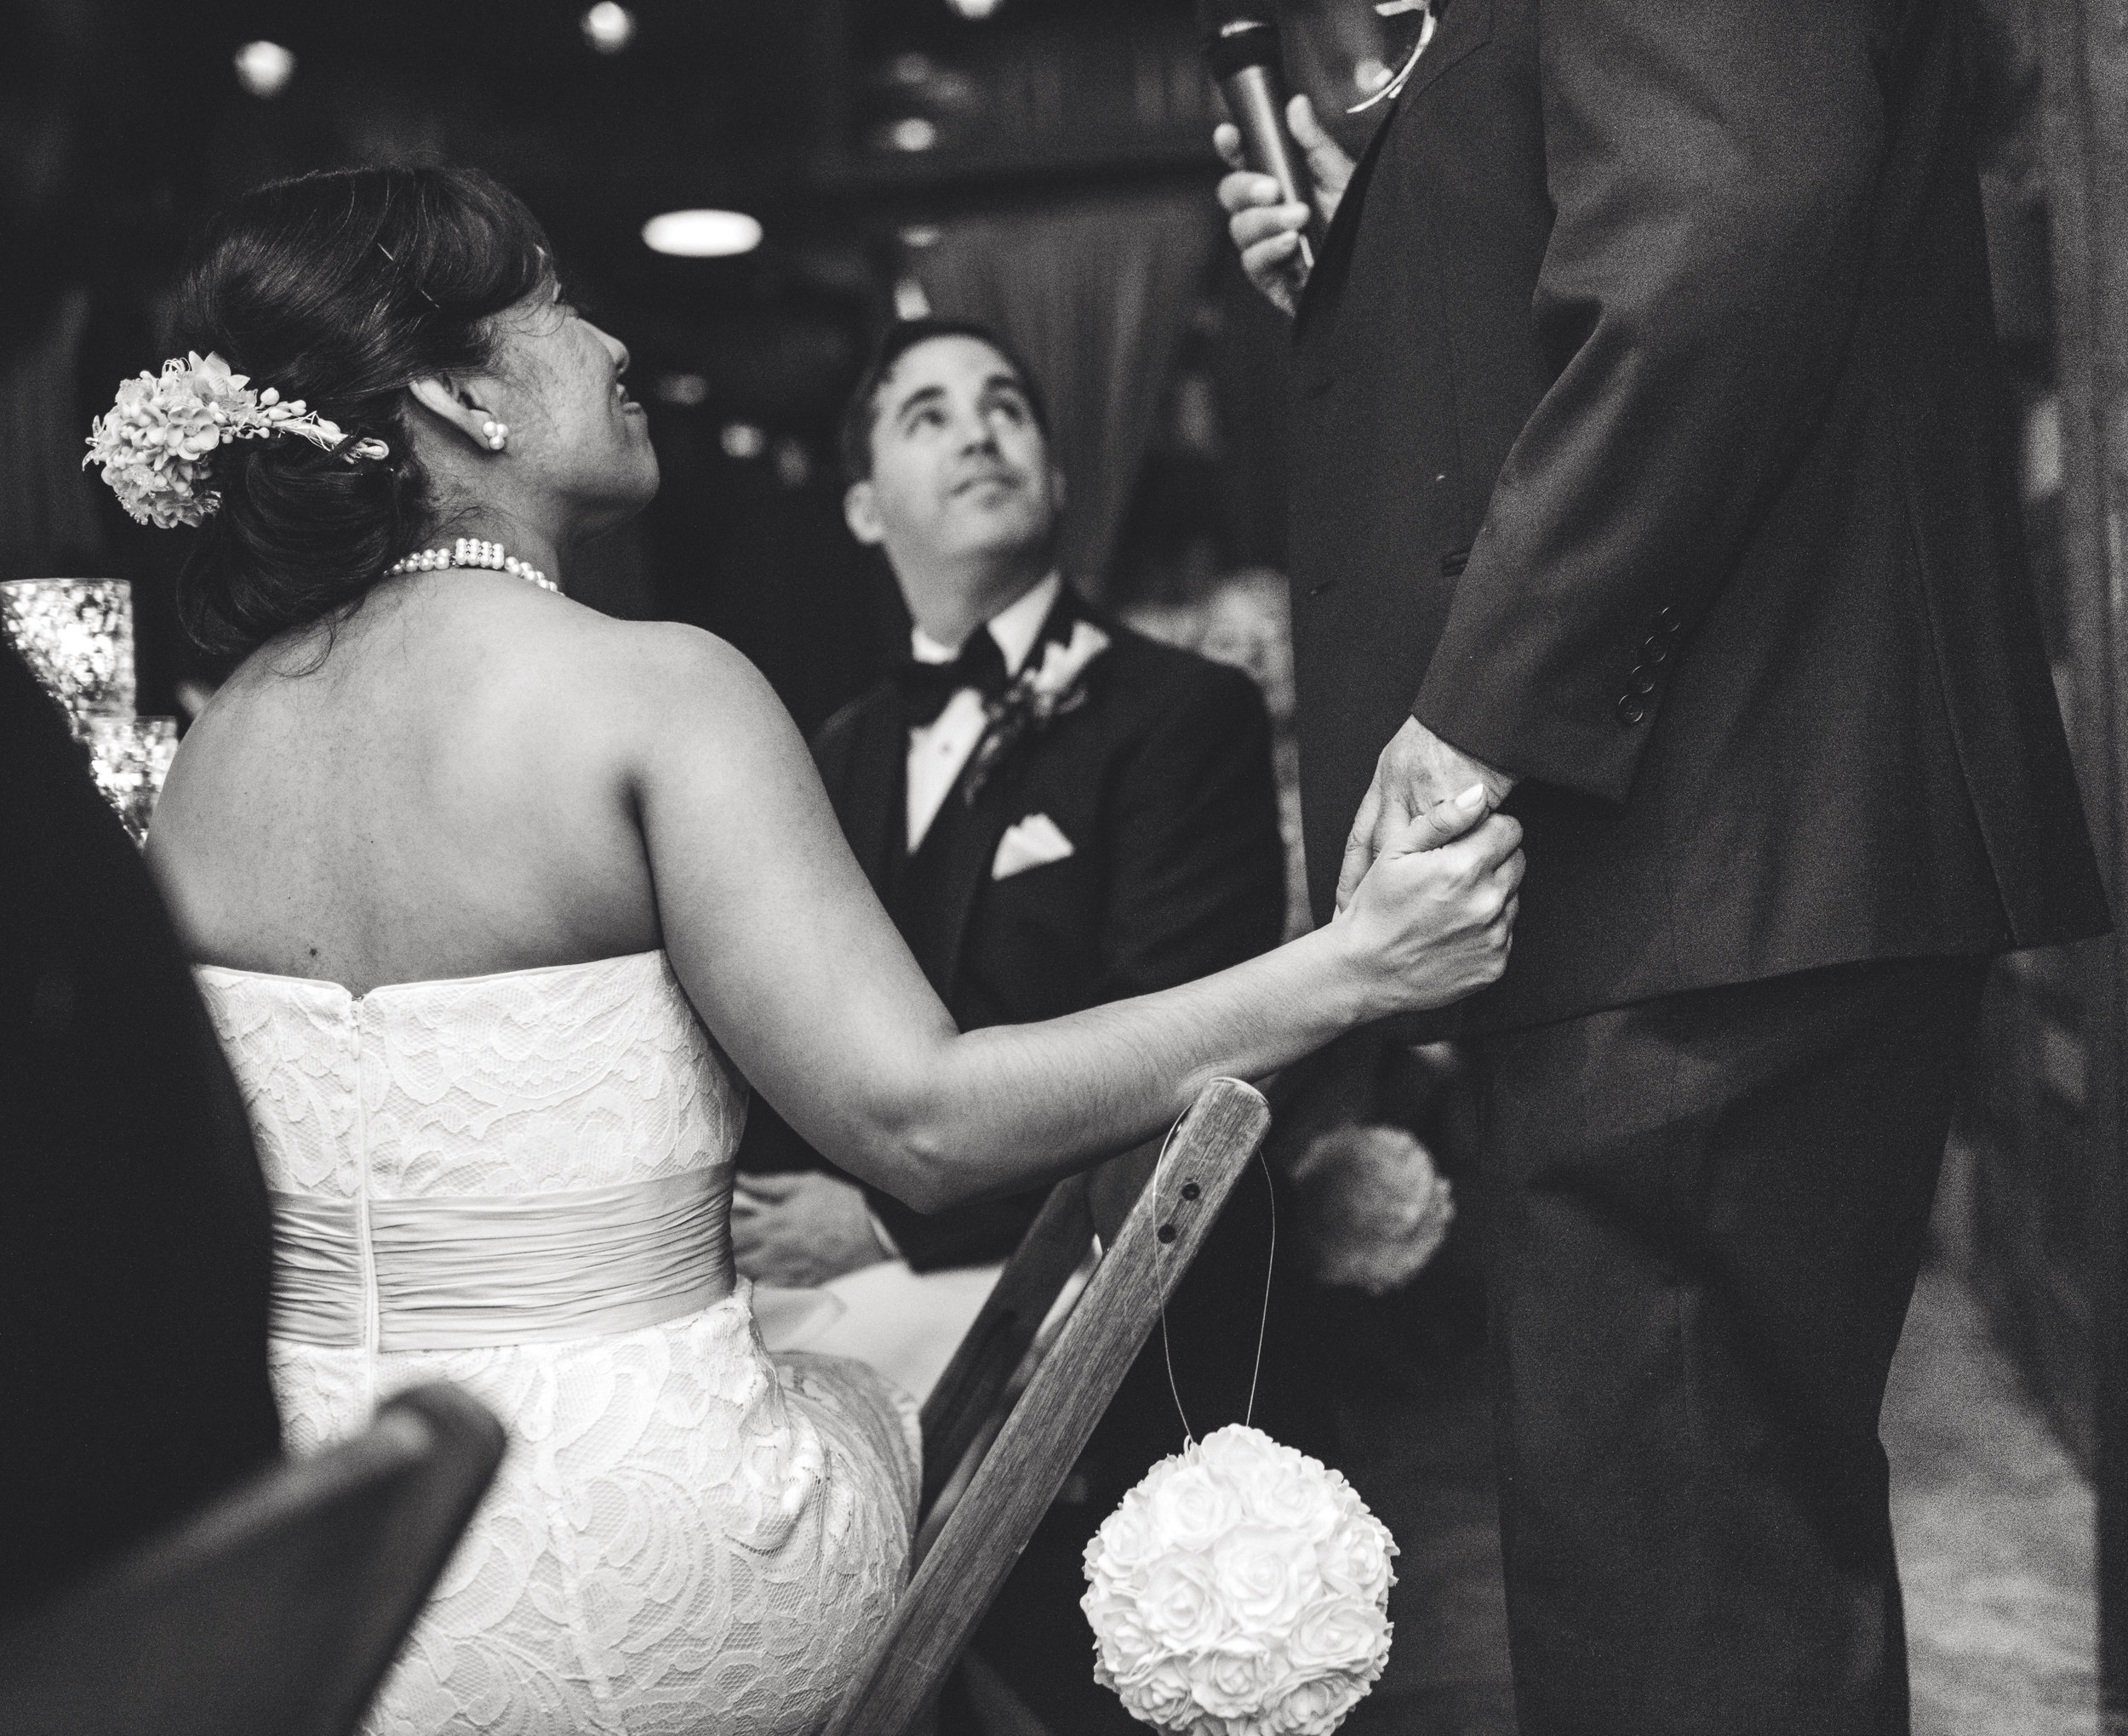 BROOKLYN WINERY WEDDING - TWOTWENTY by CHI-CHI AGBIM-397.jpg